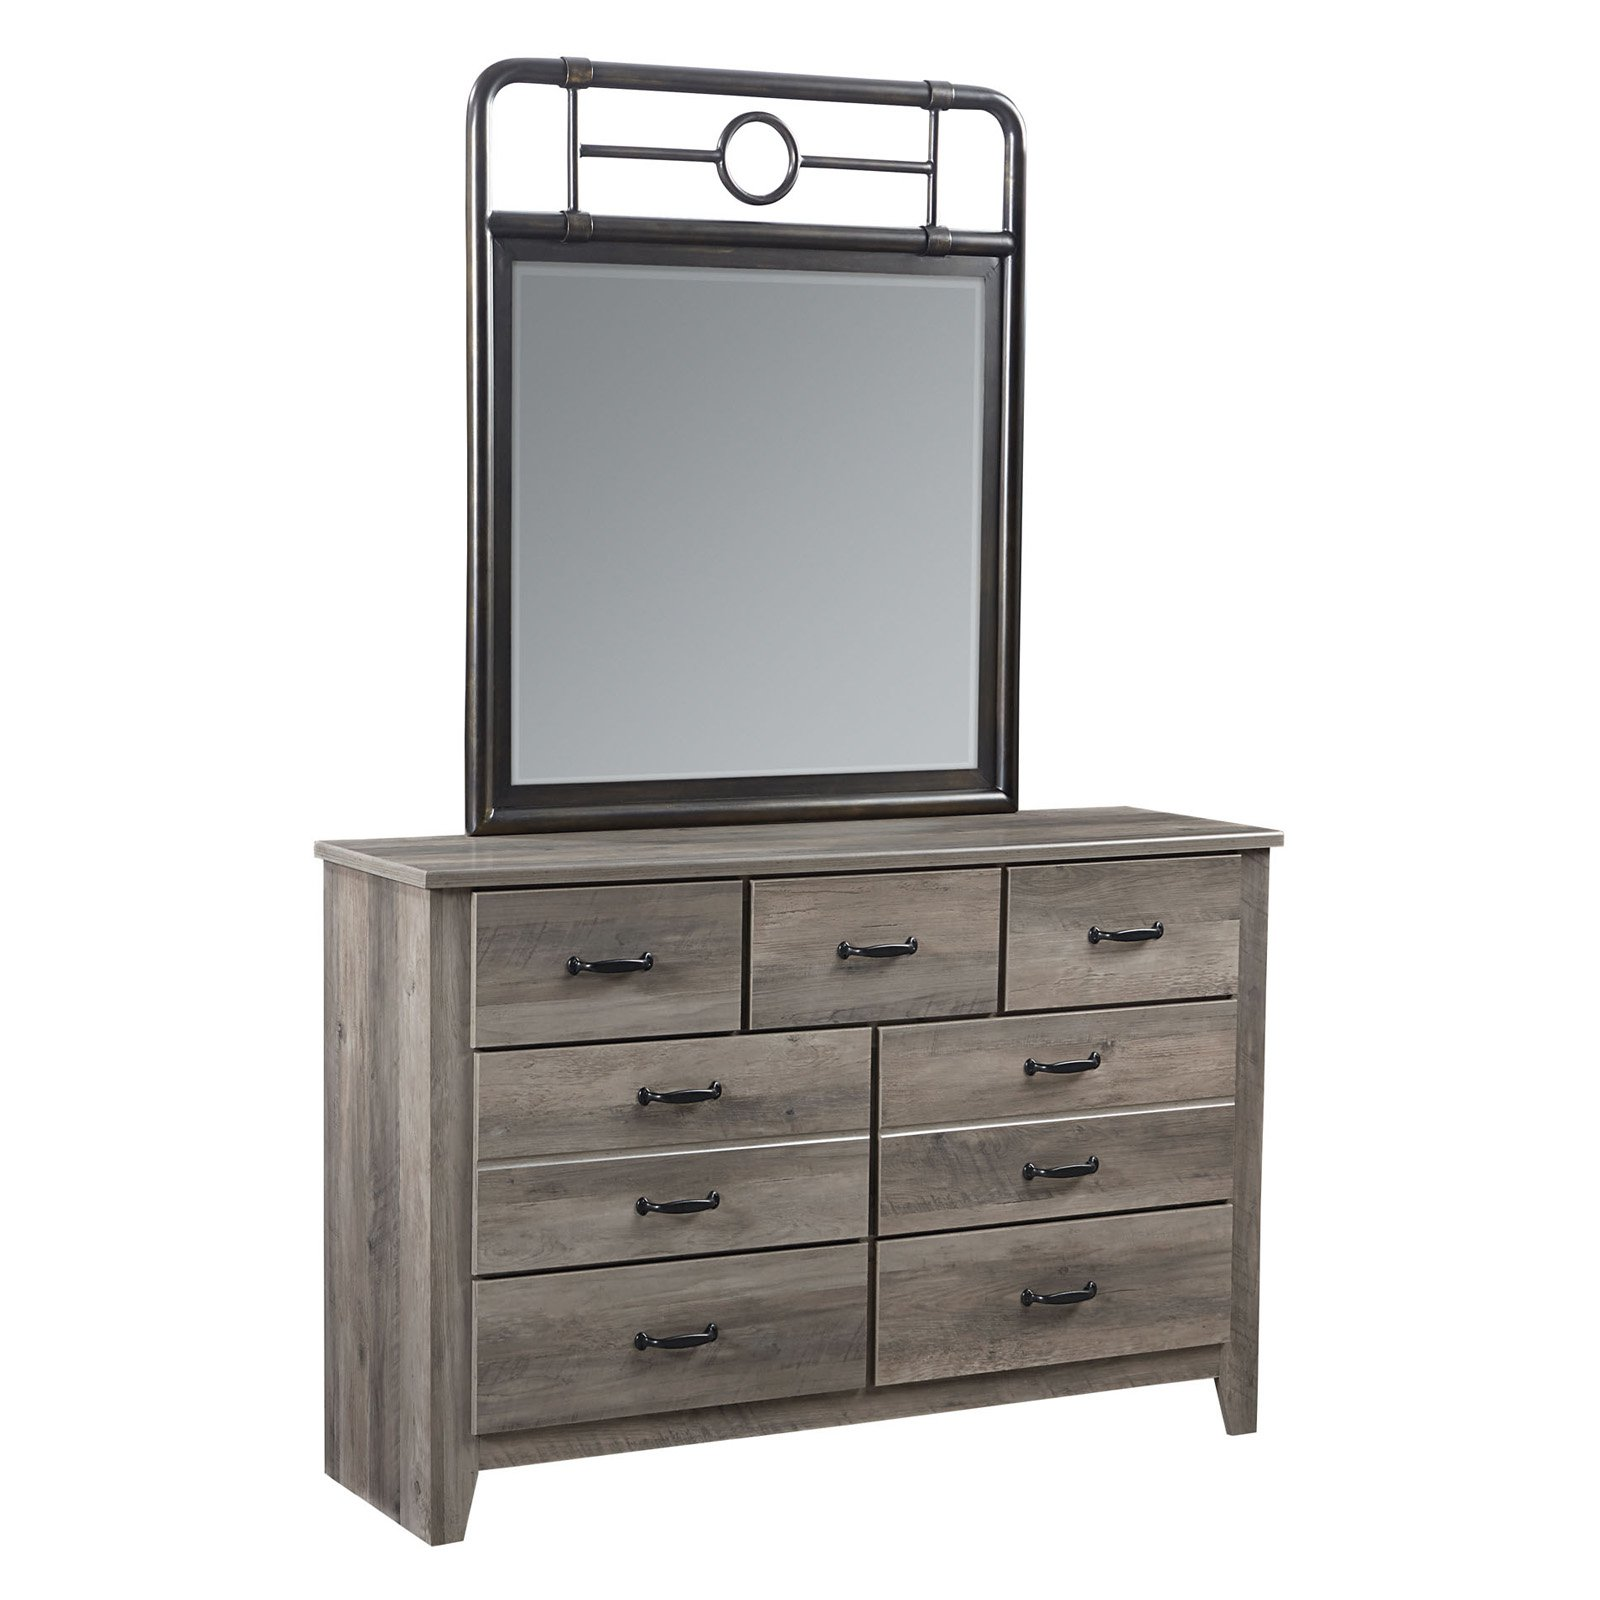 Standard Furniture Barnett 7 Drawer Dresser With Mirror